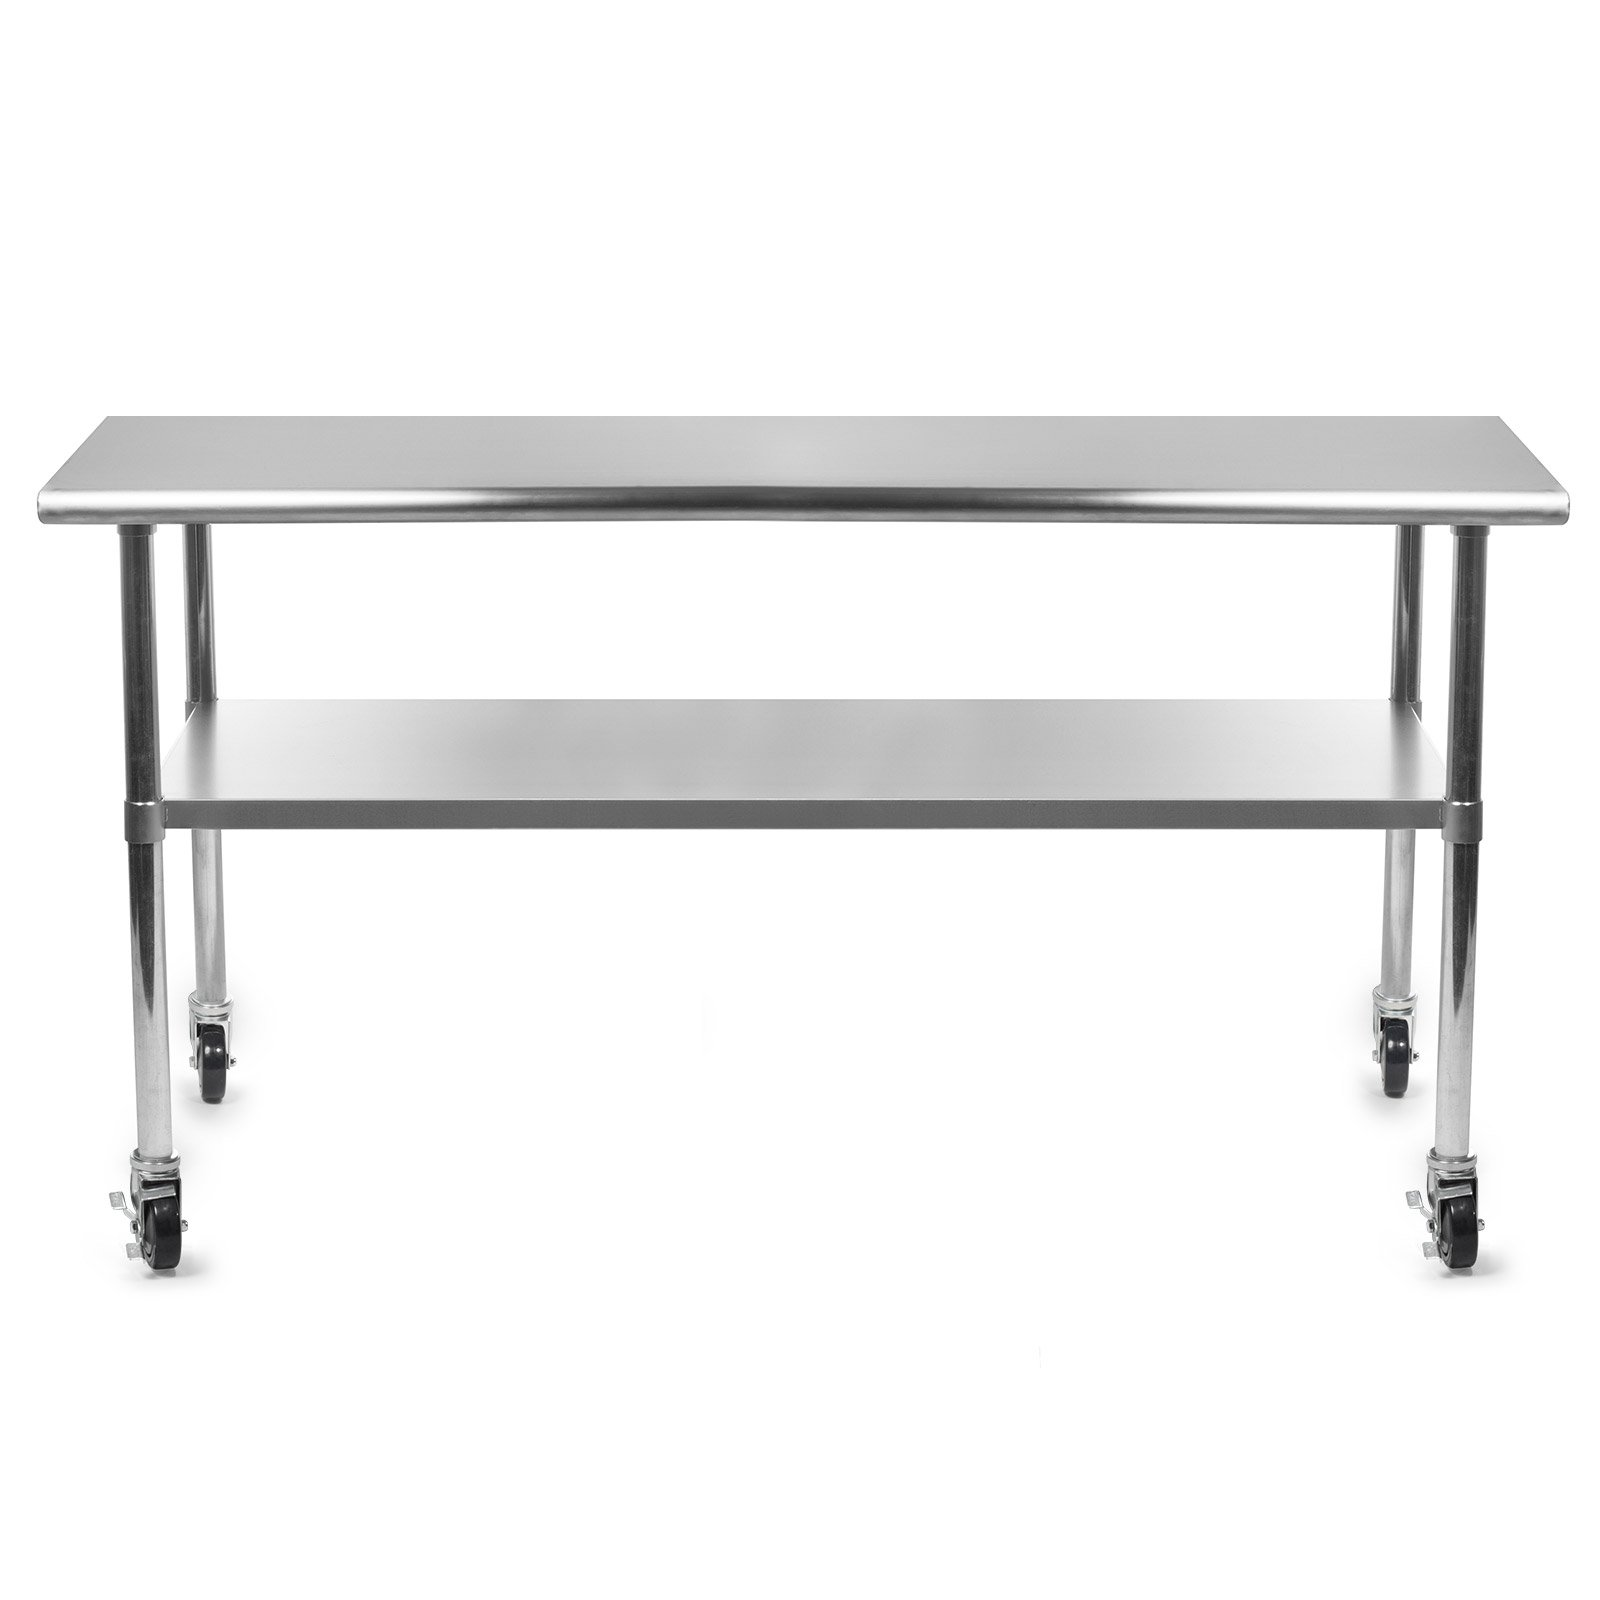 Gridmann NSF Stainless Steel Commercial Kitchen Prep & Work Table w/ 4 Casters (Wheels) - 72 in. x 24 in. by Gridmann (Image #3)